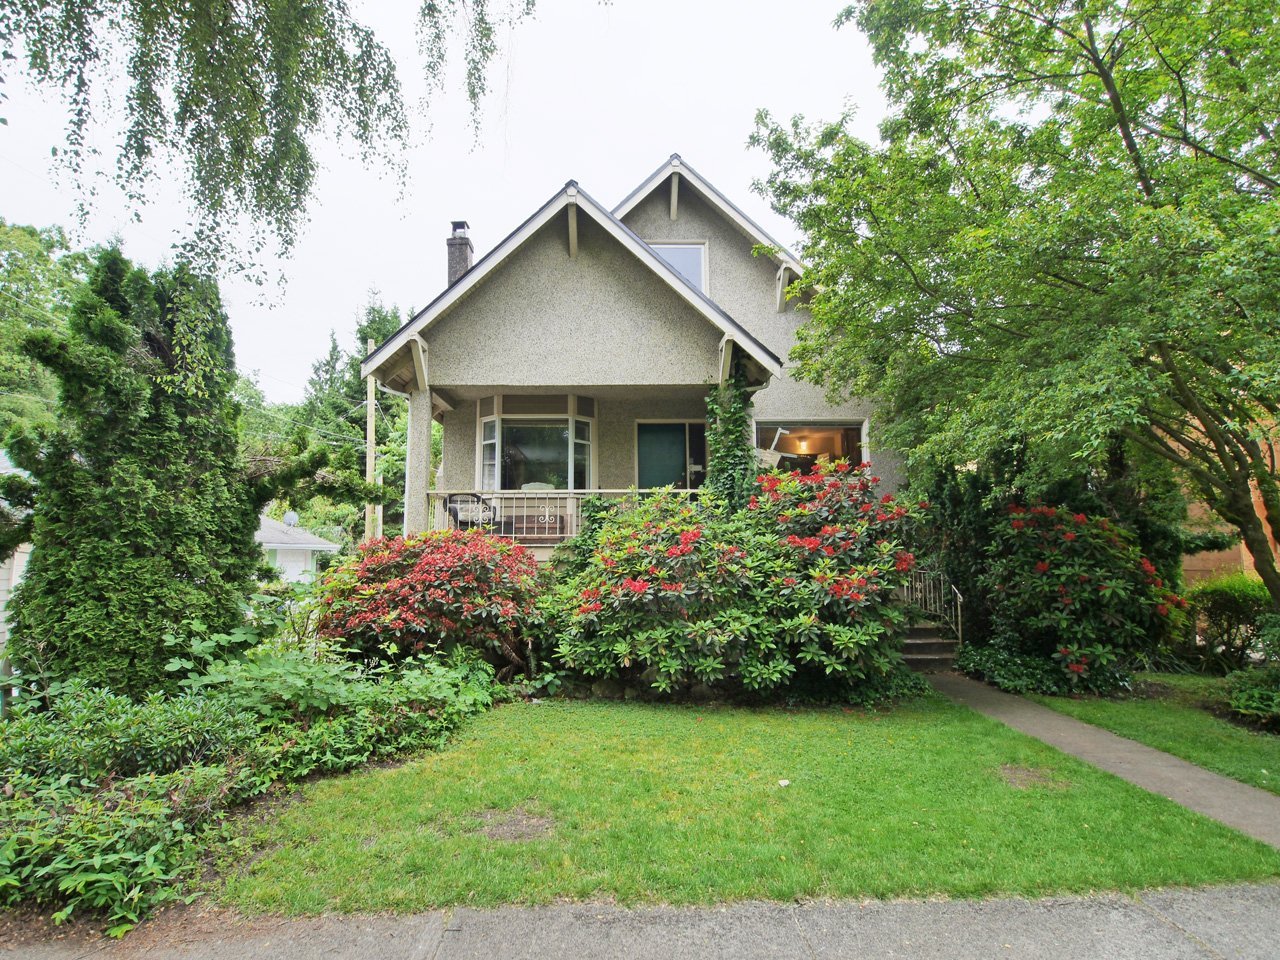 3320 W.27th Ave, Vancouver